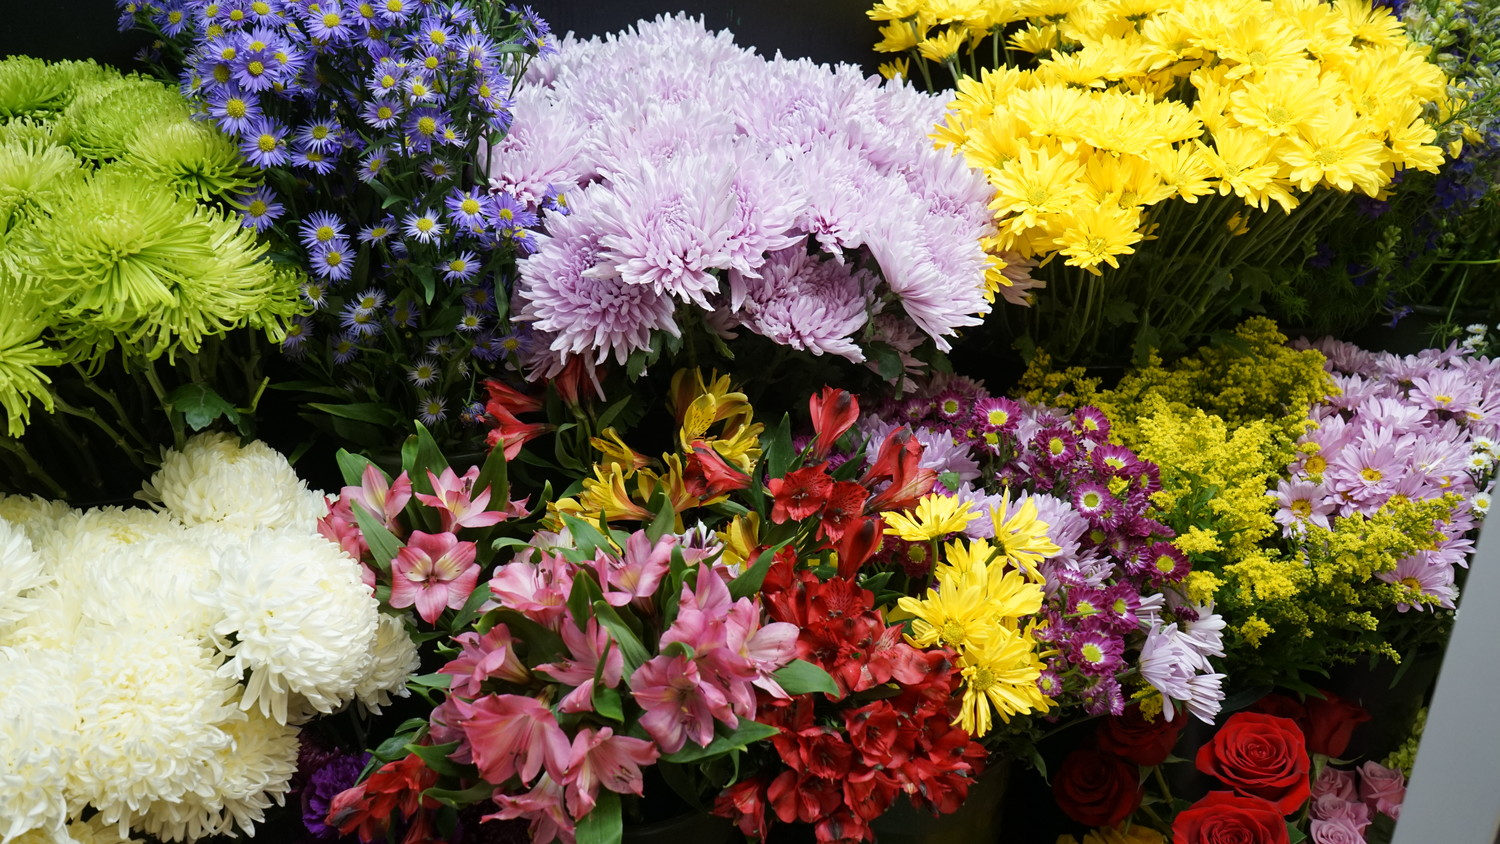 Gralitzer said she orders flowers from all over the world including Holland and Ecuador.